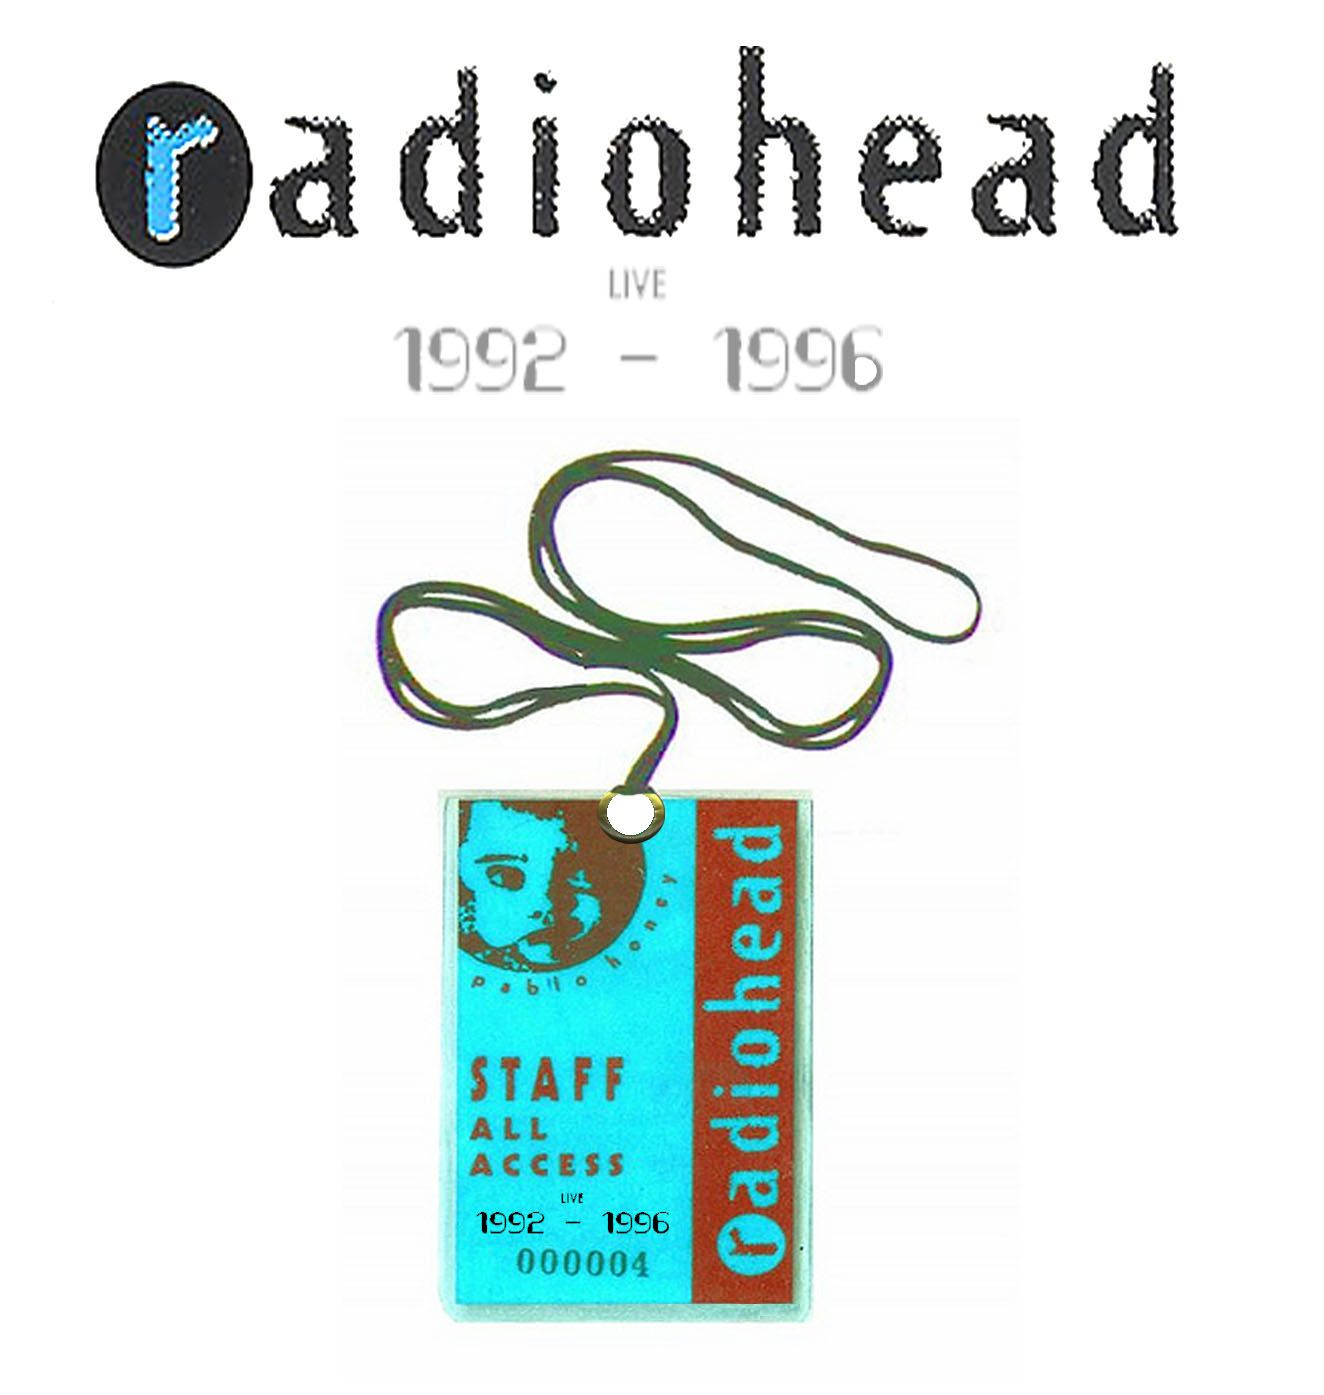 radiohead in rainbows disk 2 download